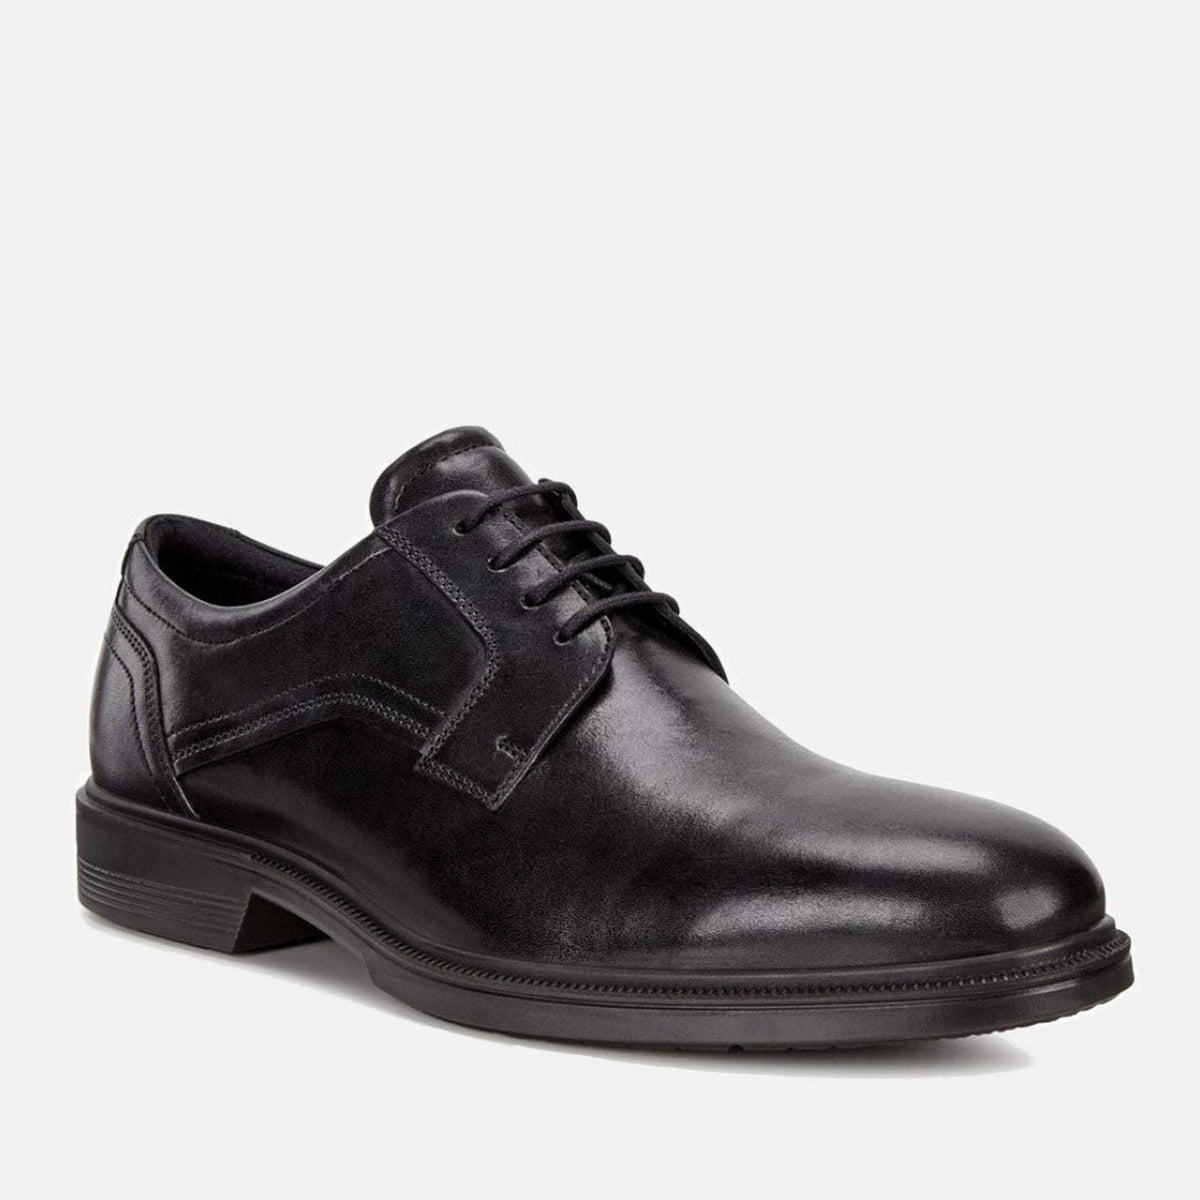 ca8d667193fa3 Lisbon 622104 01001 Black- Ecco Men's Derby Formal Lace Up Black ...